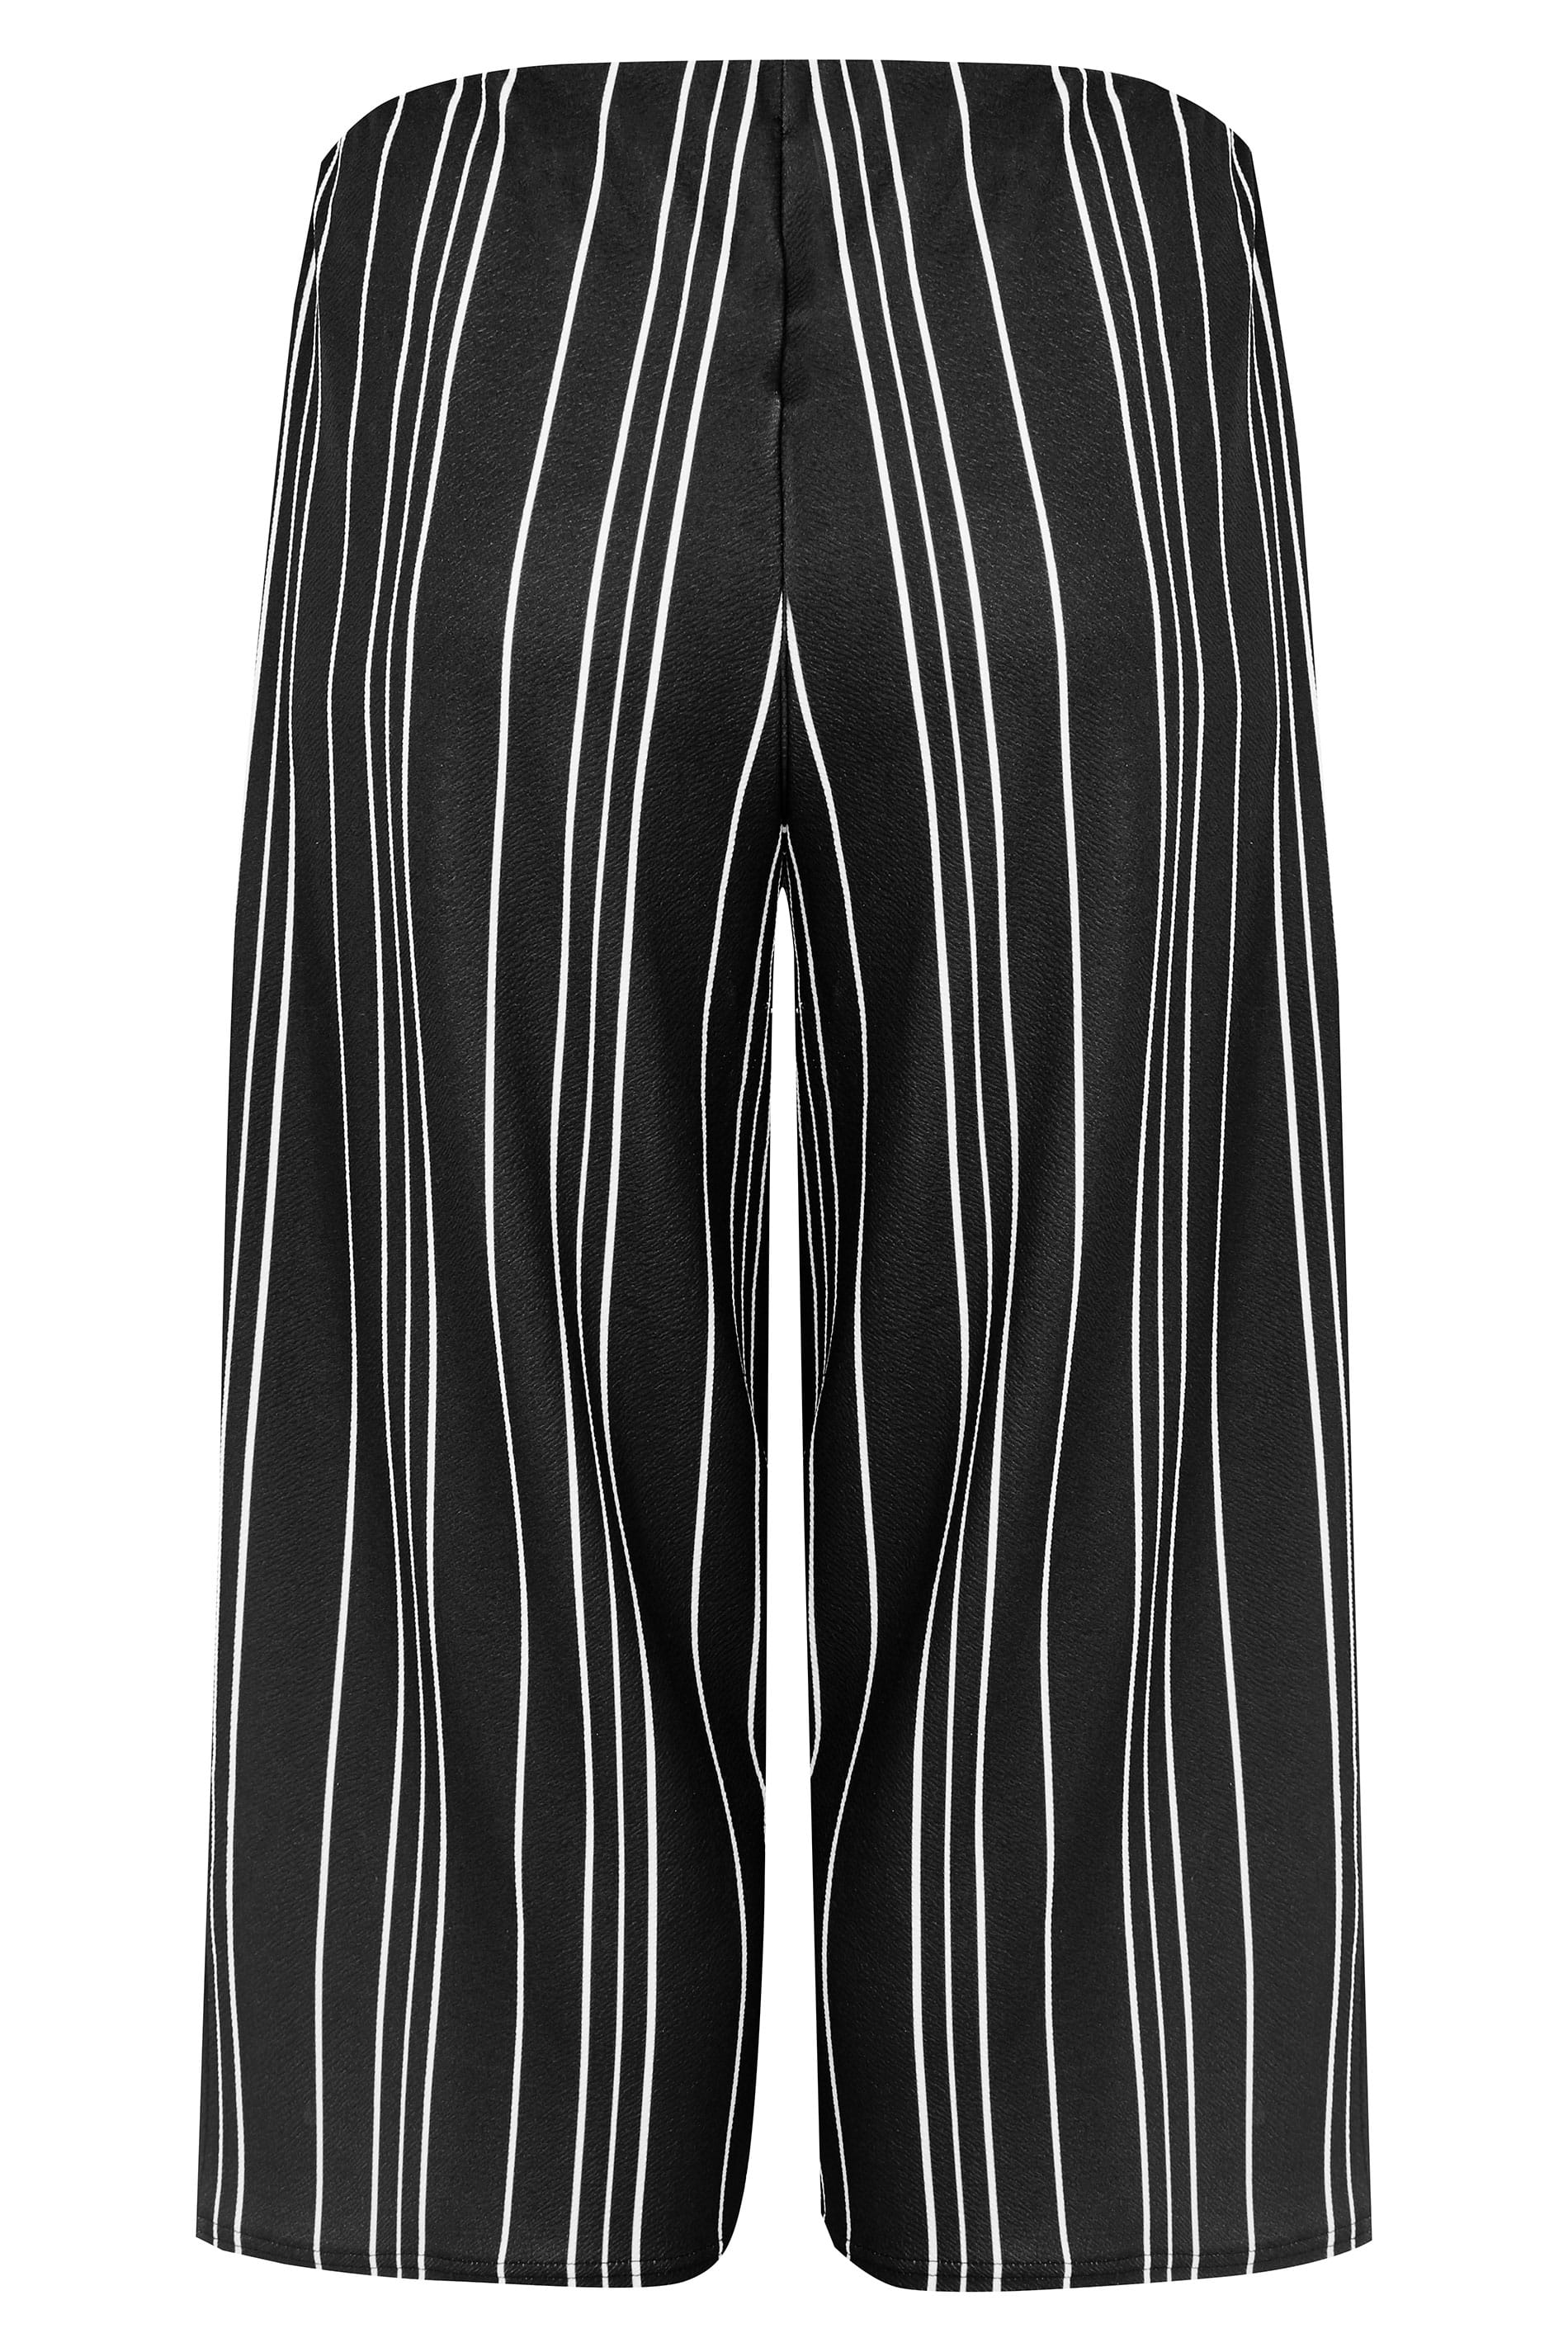 b693aef536aa9 Black   White Striped Culottes